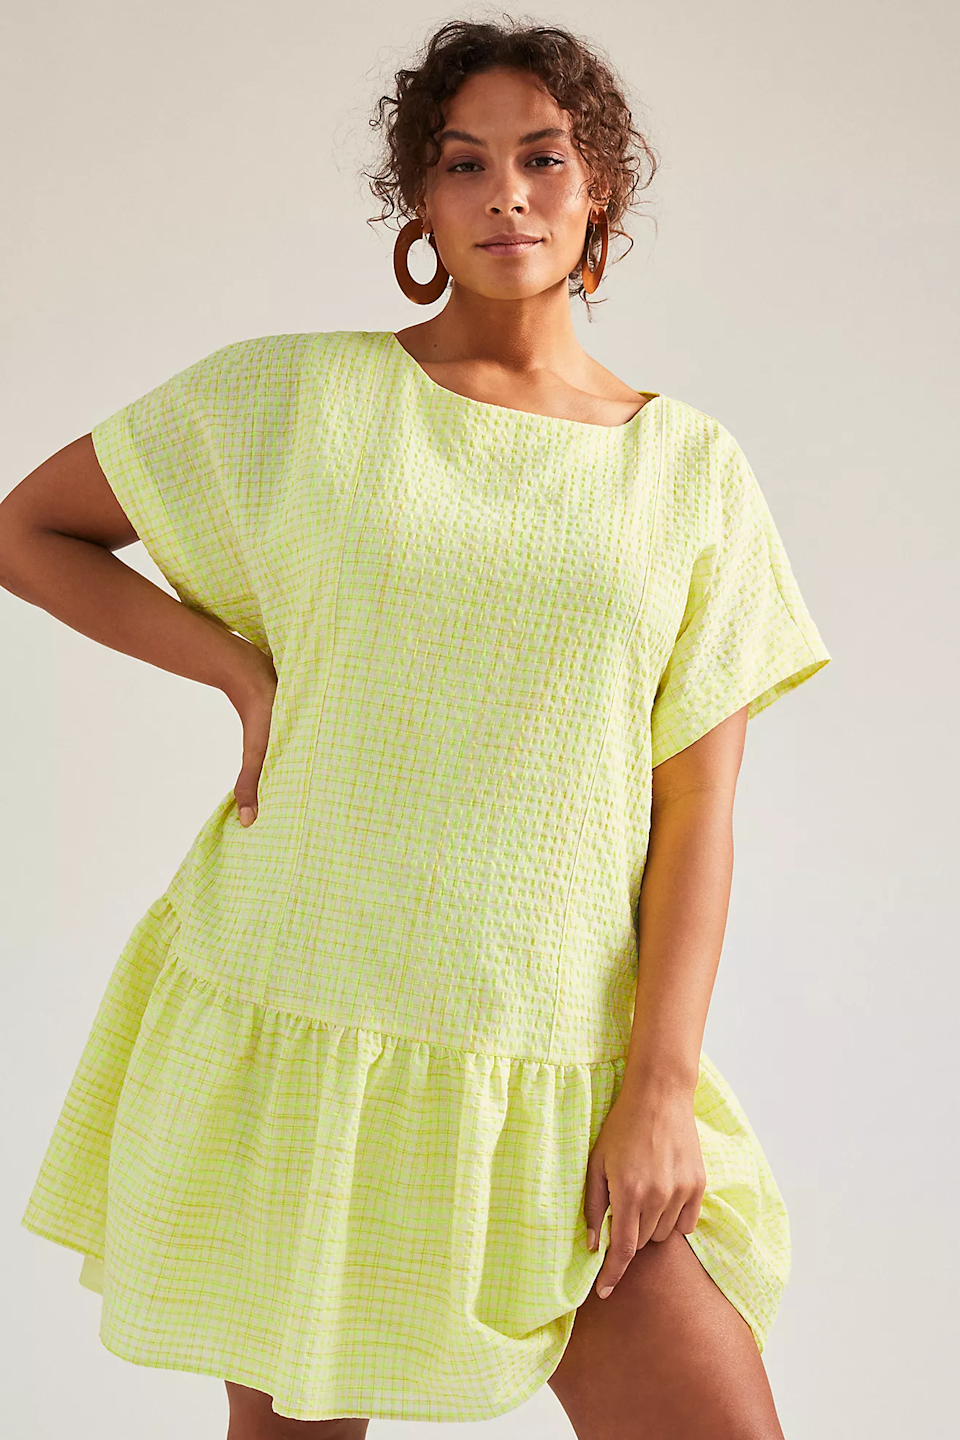 """<h2>Corey Lynn Calter Mariah Textured Mini Dress</h2><br><strong>Sizes Available: 1X-3X</strong><br><br><em>Shop <strong><a href=""""https://www.anthropologie.com/shop/corey-lynn-calter-mariah-textured-mini-dress?category=plus-size-dresses&color=071&type=PLUS&viewcode=c&quantity=1"""" rel=""""nofollow noopener"""" target=""""_blank"""" data-ylk=""""slk:Anthropologie"""" class=""""link rapid-noclick-resp"""">Anthropologie</a></strong></em><br><br><strong>Corey Lynn Calter</strong> Corey Lynn Calter Mariah Textured Mini Dress, $, available at <a href=""""https://go.skimresources.com/?id=30283X879131&url=https%3A%2F%2Fwww.anthropologie.com%2Fshop%2Fcorey-lynn-calter-mariah-textured-mini-dress%3Fcategory%3Dplus-size-dresses%26color%3D071%26type%3DPLUS%26viewcode%3Dc%26quantity%3D1"""" rel=""""nofollow noopener"""" target=""""_blank"""" data-ylk=""""slk:Anthropologie"""" class=""""link rapid-noclick-resp"""">Anthropologie</a>"""